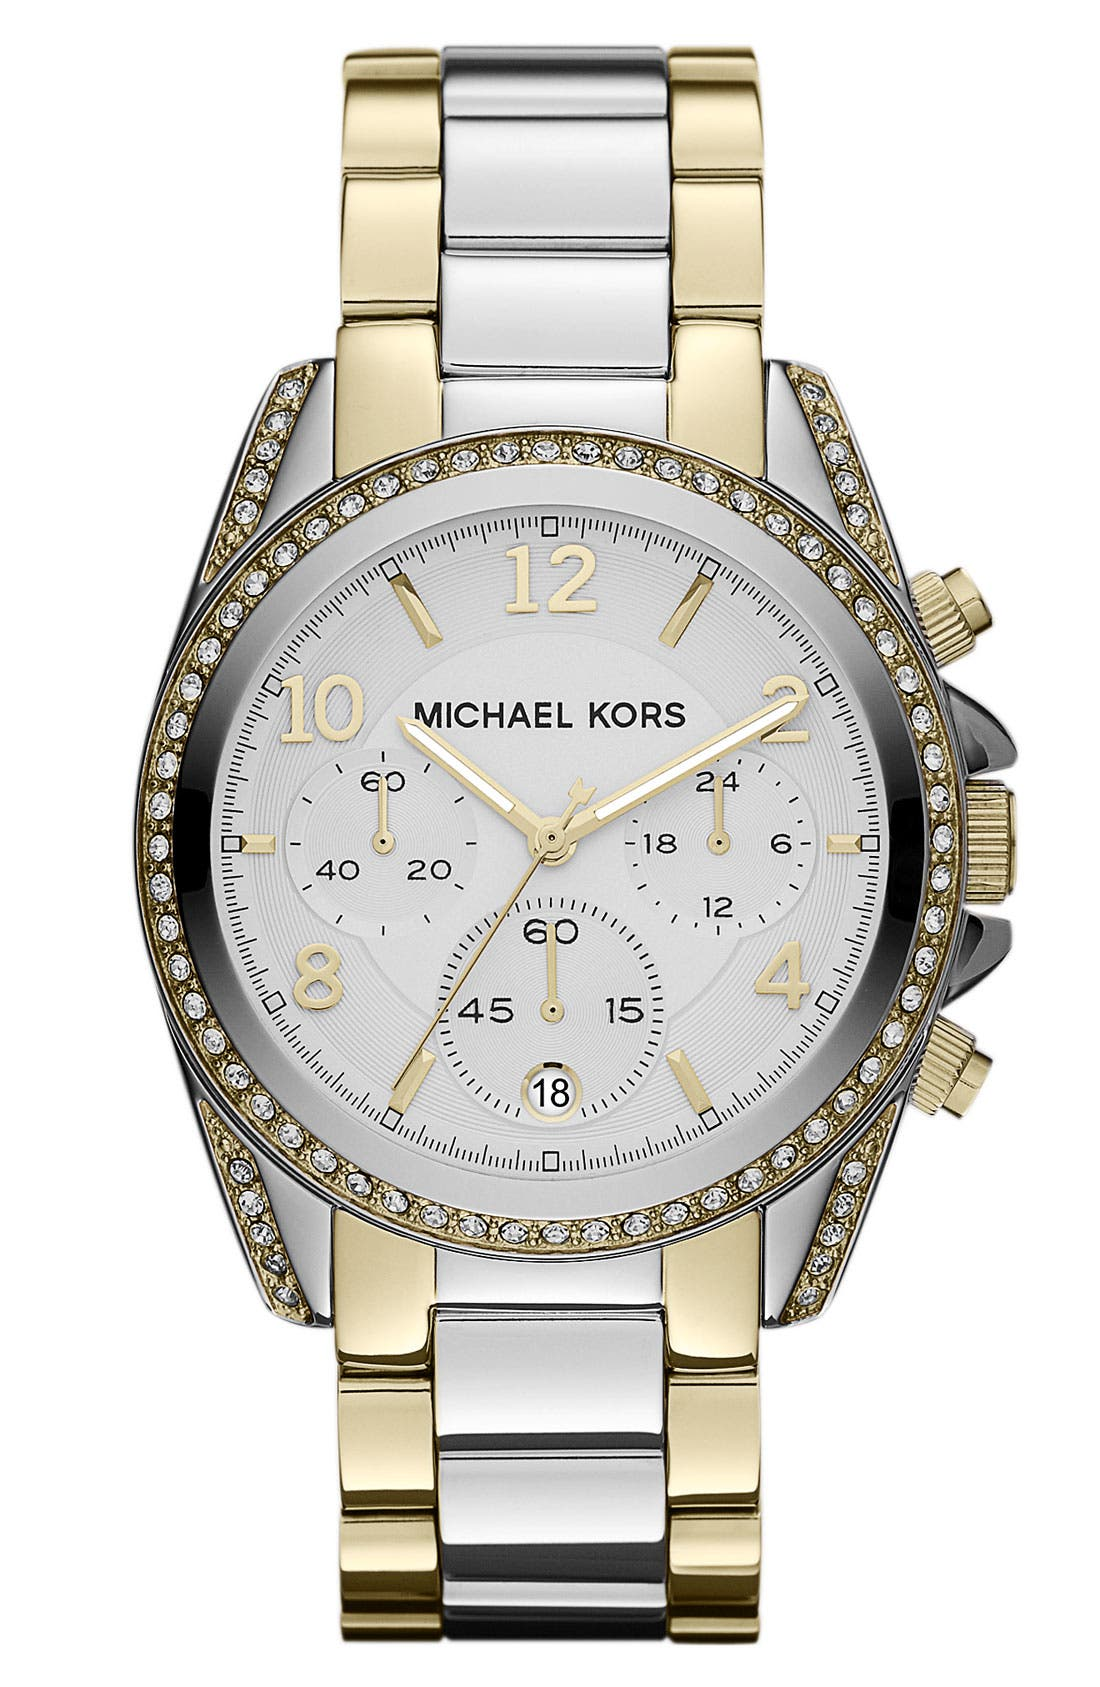 Main Image - Michael Kors 'Blair' Chronograph Watch, 39mm